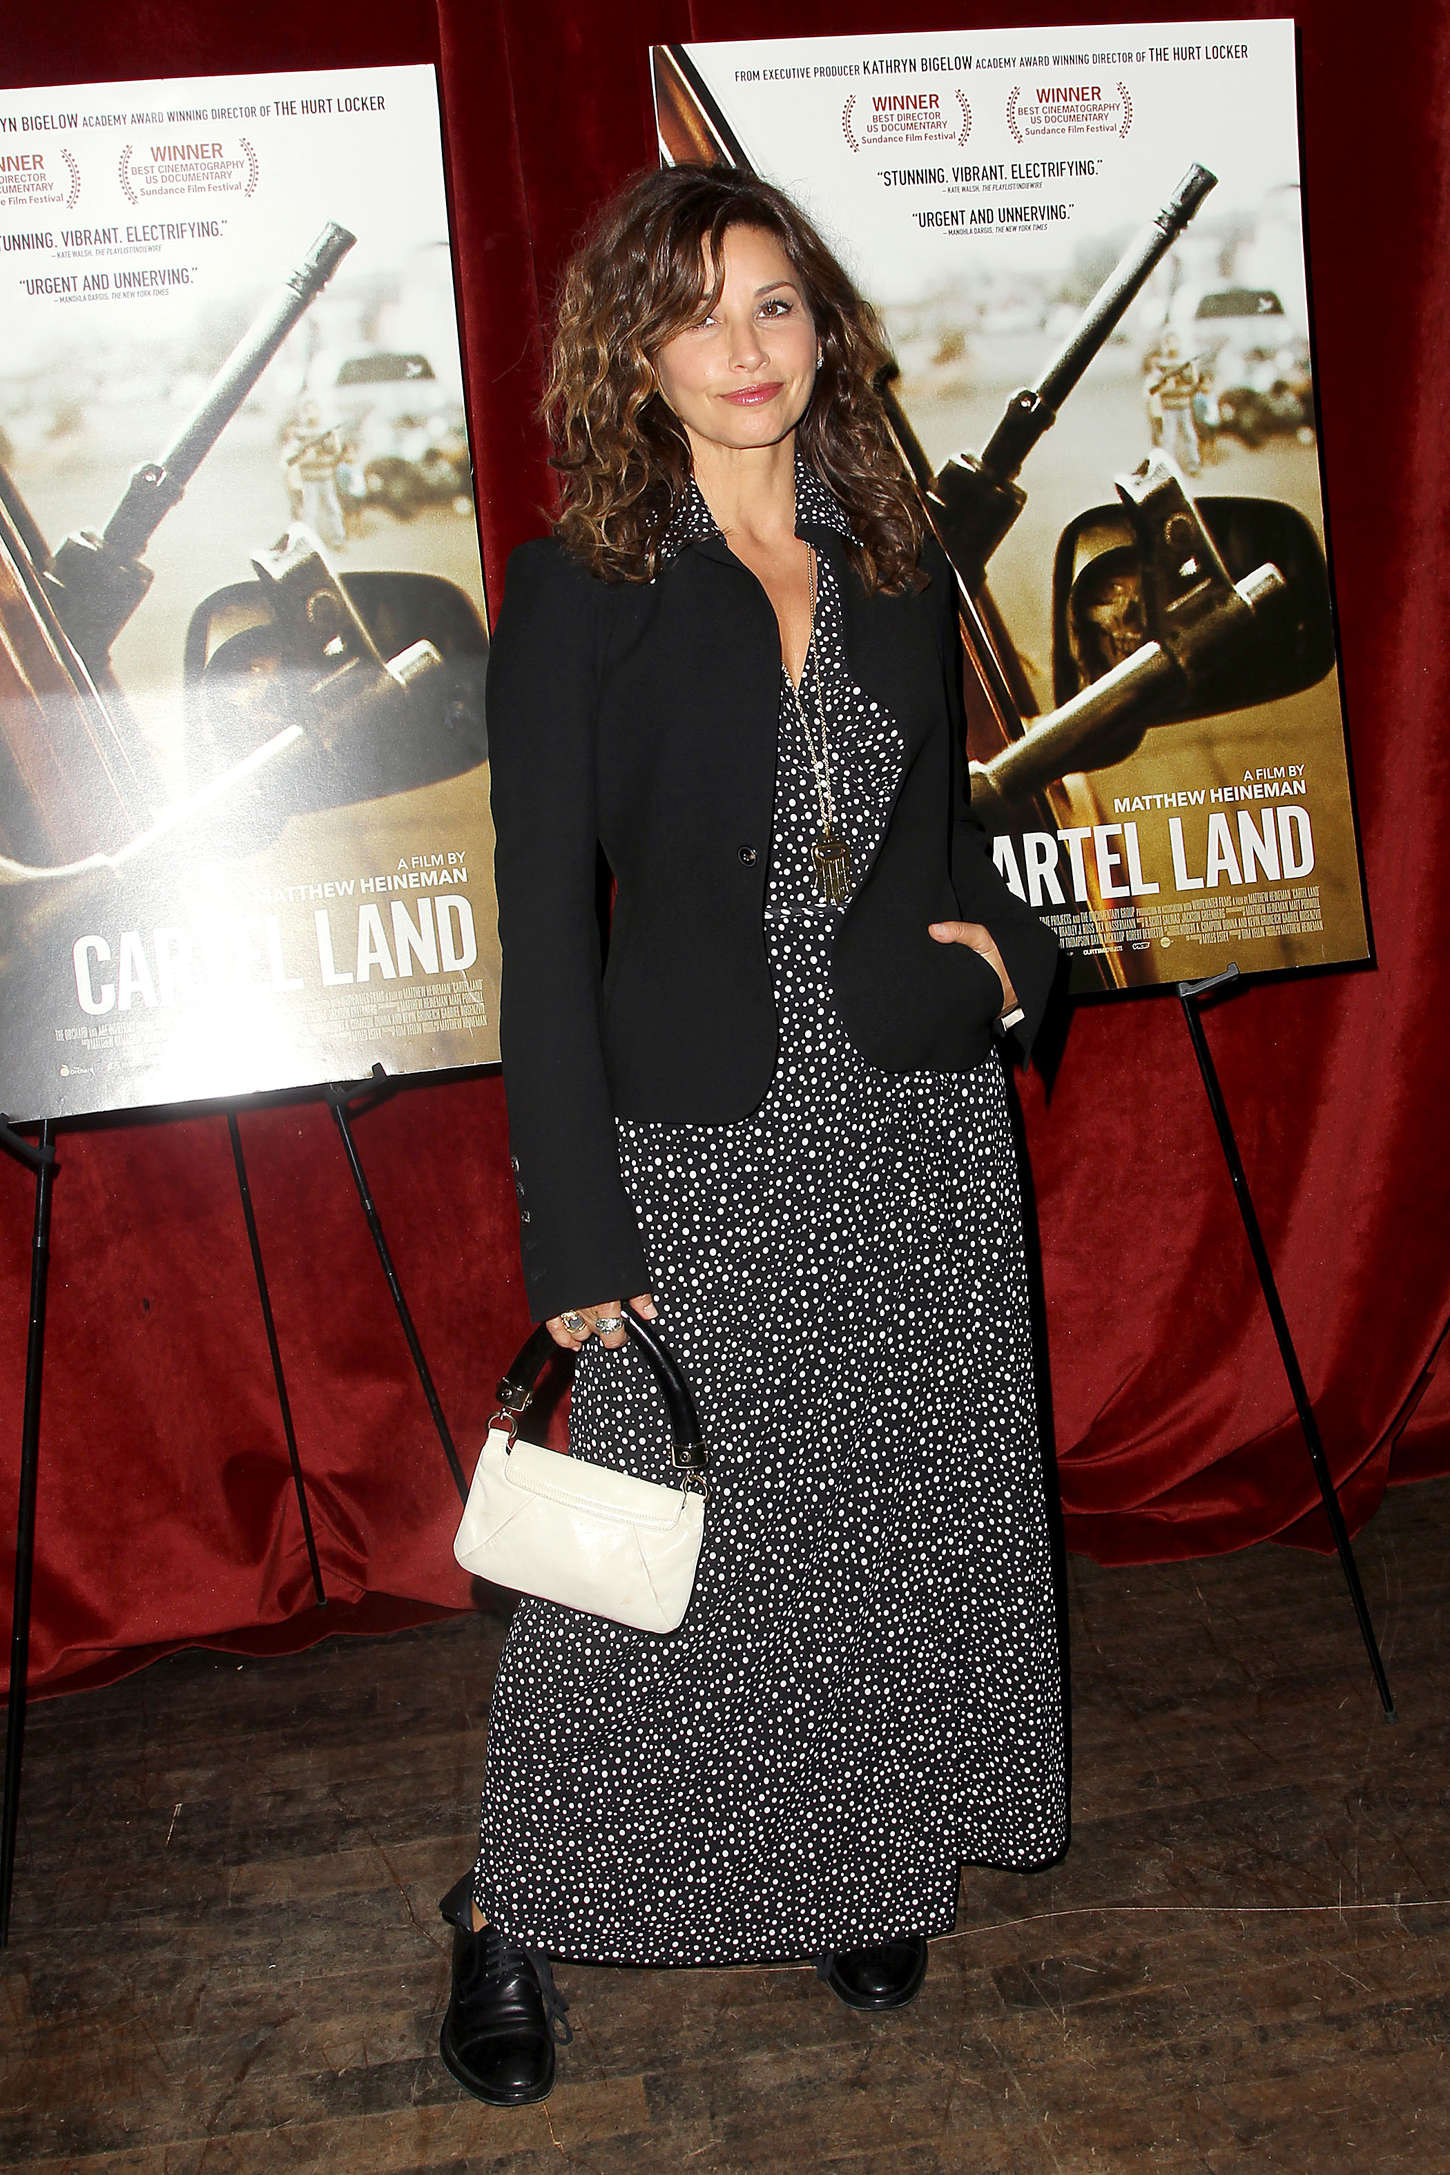 Gina Gershon Cartel Land Special Screening in New York